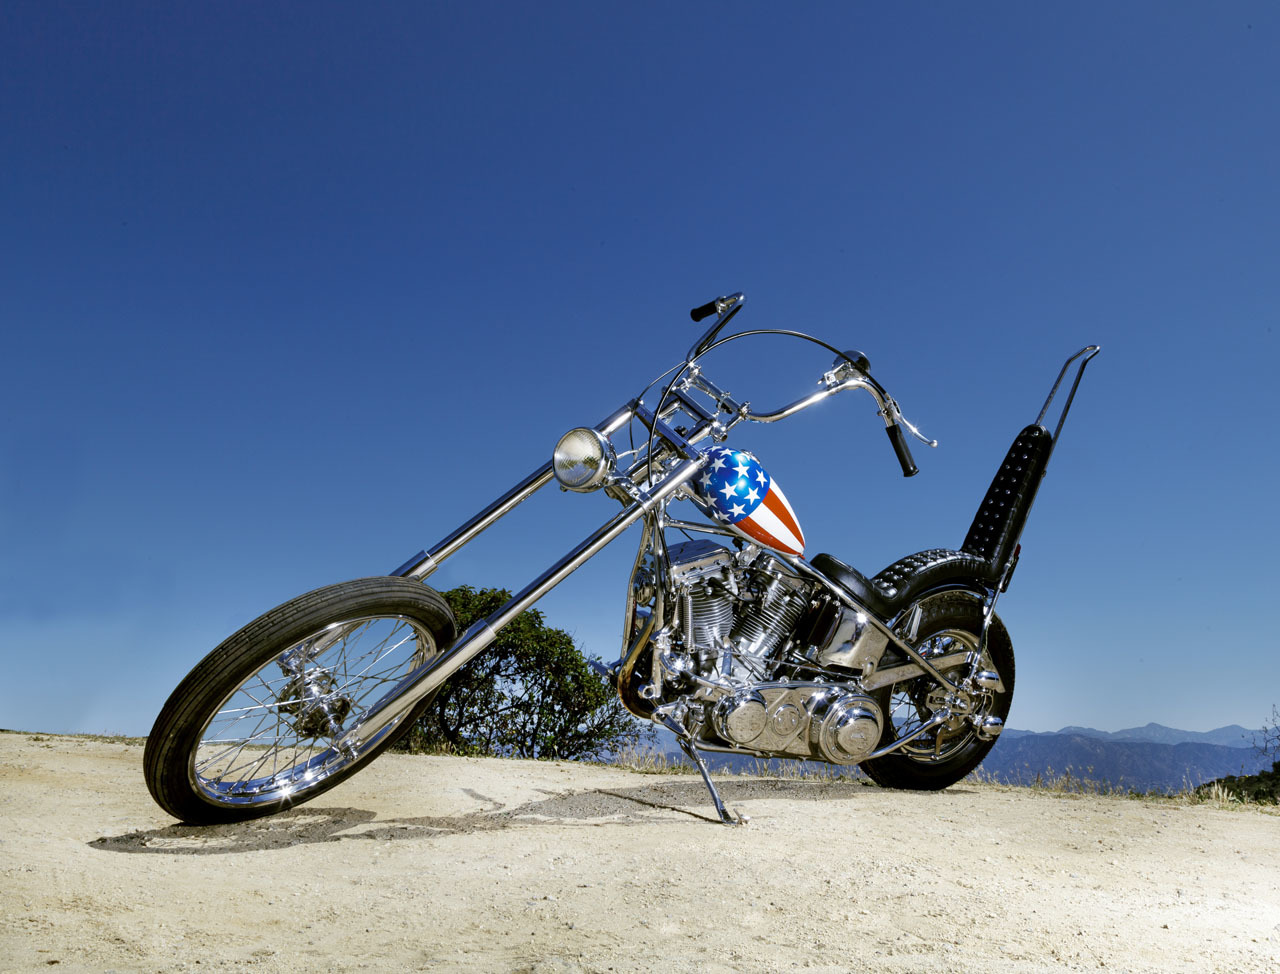 easy rider captain america motorcycle auction photo